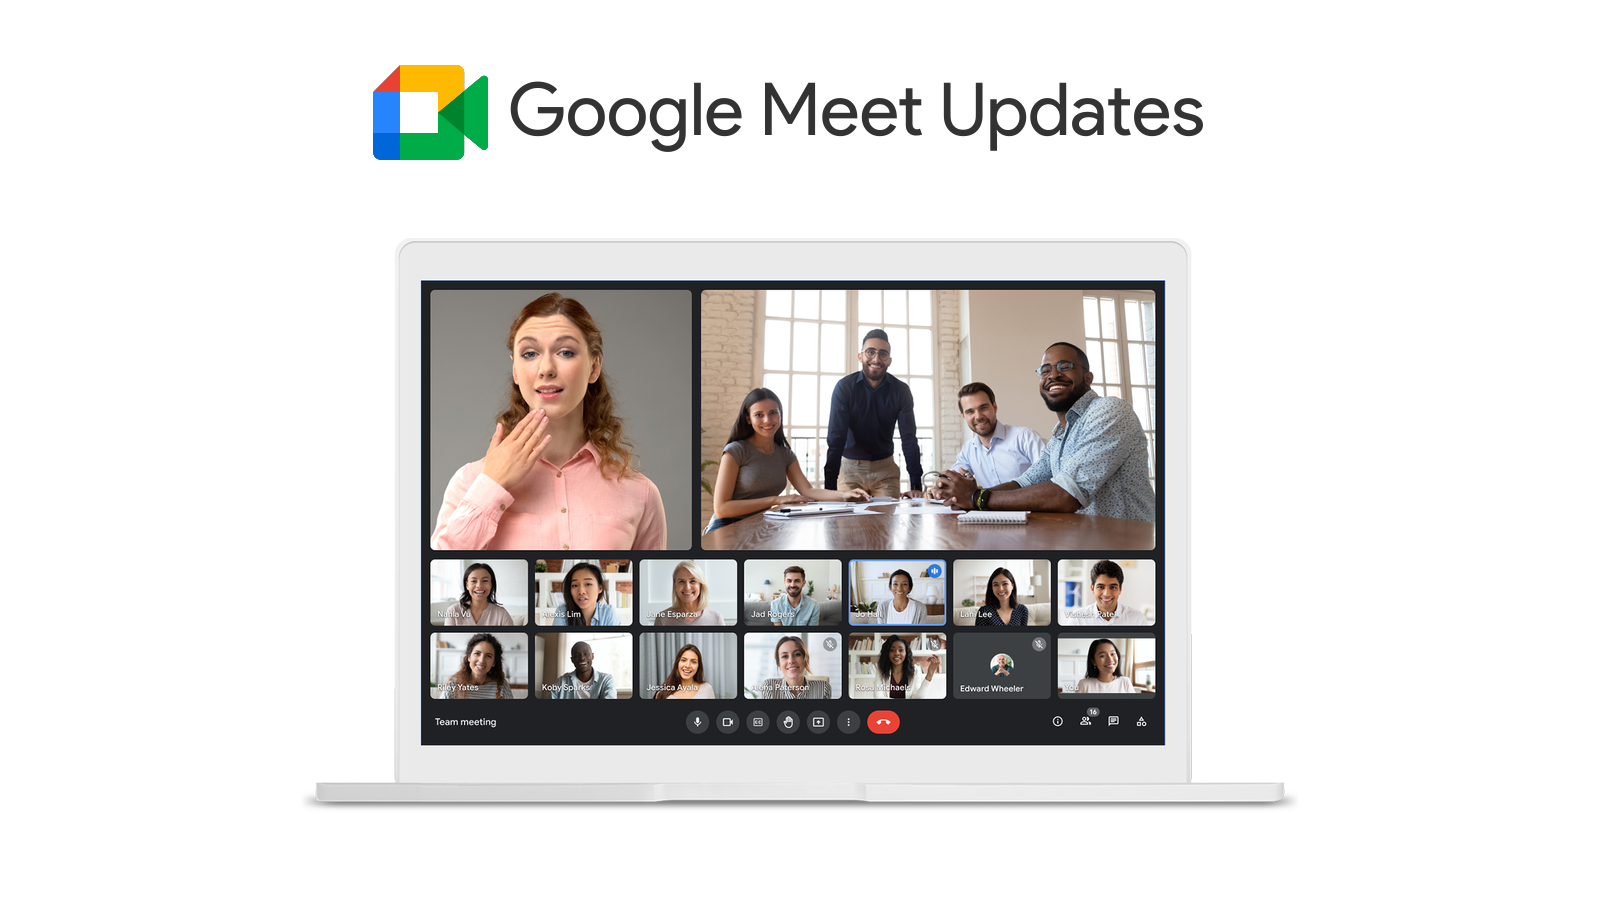 Google Meet visual redesign incoming with auto-exposure tools, speaker highlighting, more